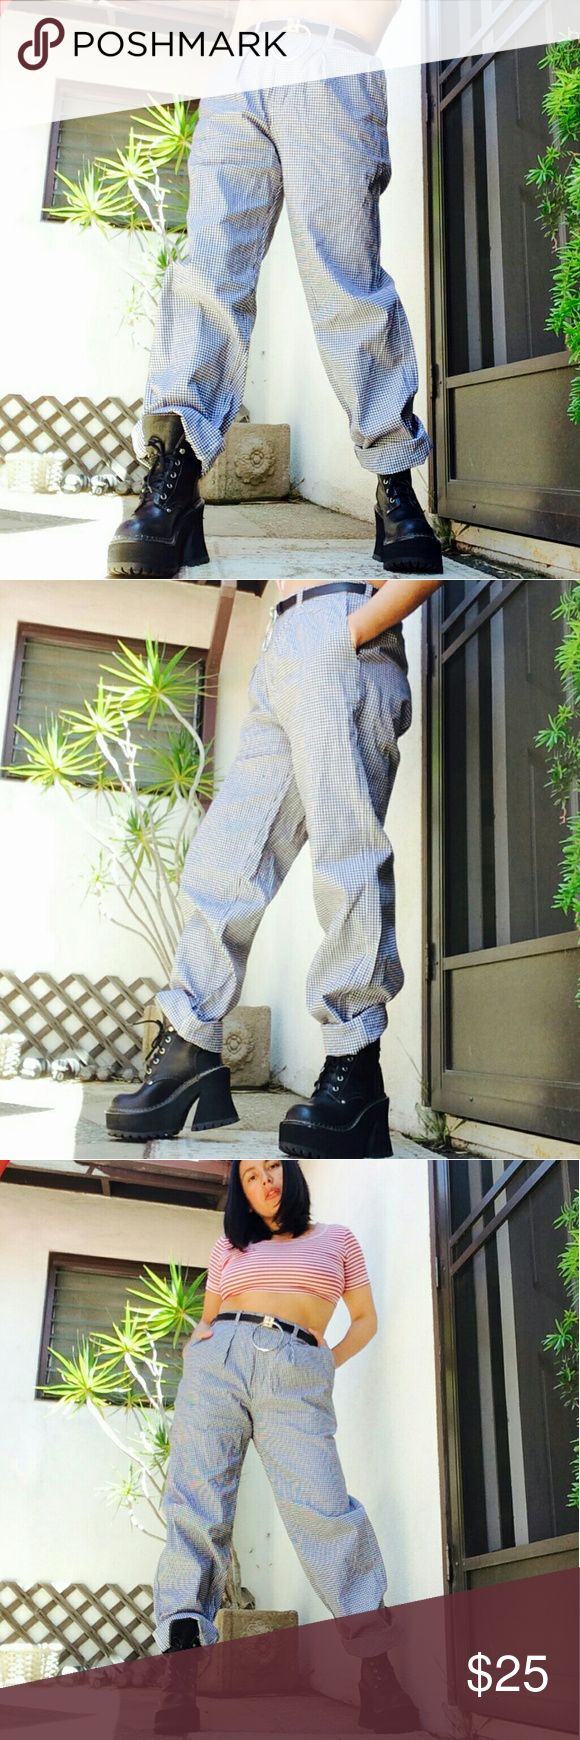 """Vtg gingham german grandpa oversized trousers Imported vintage german gingham cotton high waisted grandpa trousers. Black / white combo. Size 33x31. I believe these are male, but girls can slay these too.   Waist is elastic and will adjust several sizes.  Measuraments taken across, without stretching:  Waist: 13"""" Hips: 17"""" Rise: 13 1/2"""" Inseam: 31""""  Modeled in small/26""""w with oversized / baggy fit.  No trades  Cool discounts on bundles     Vintage retro plaid checkered gingham granny grandpa…"""